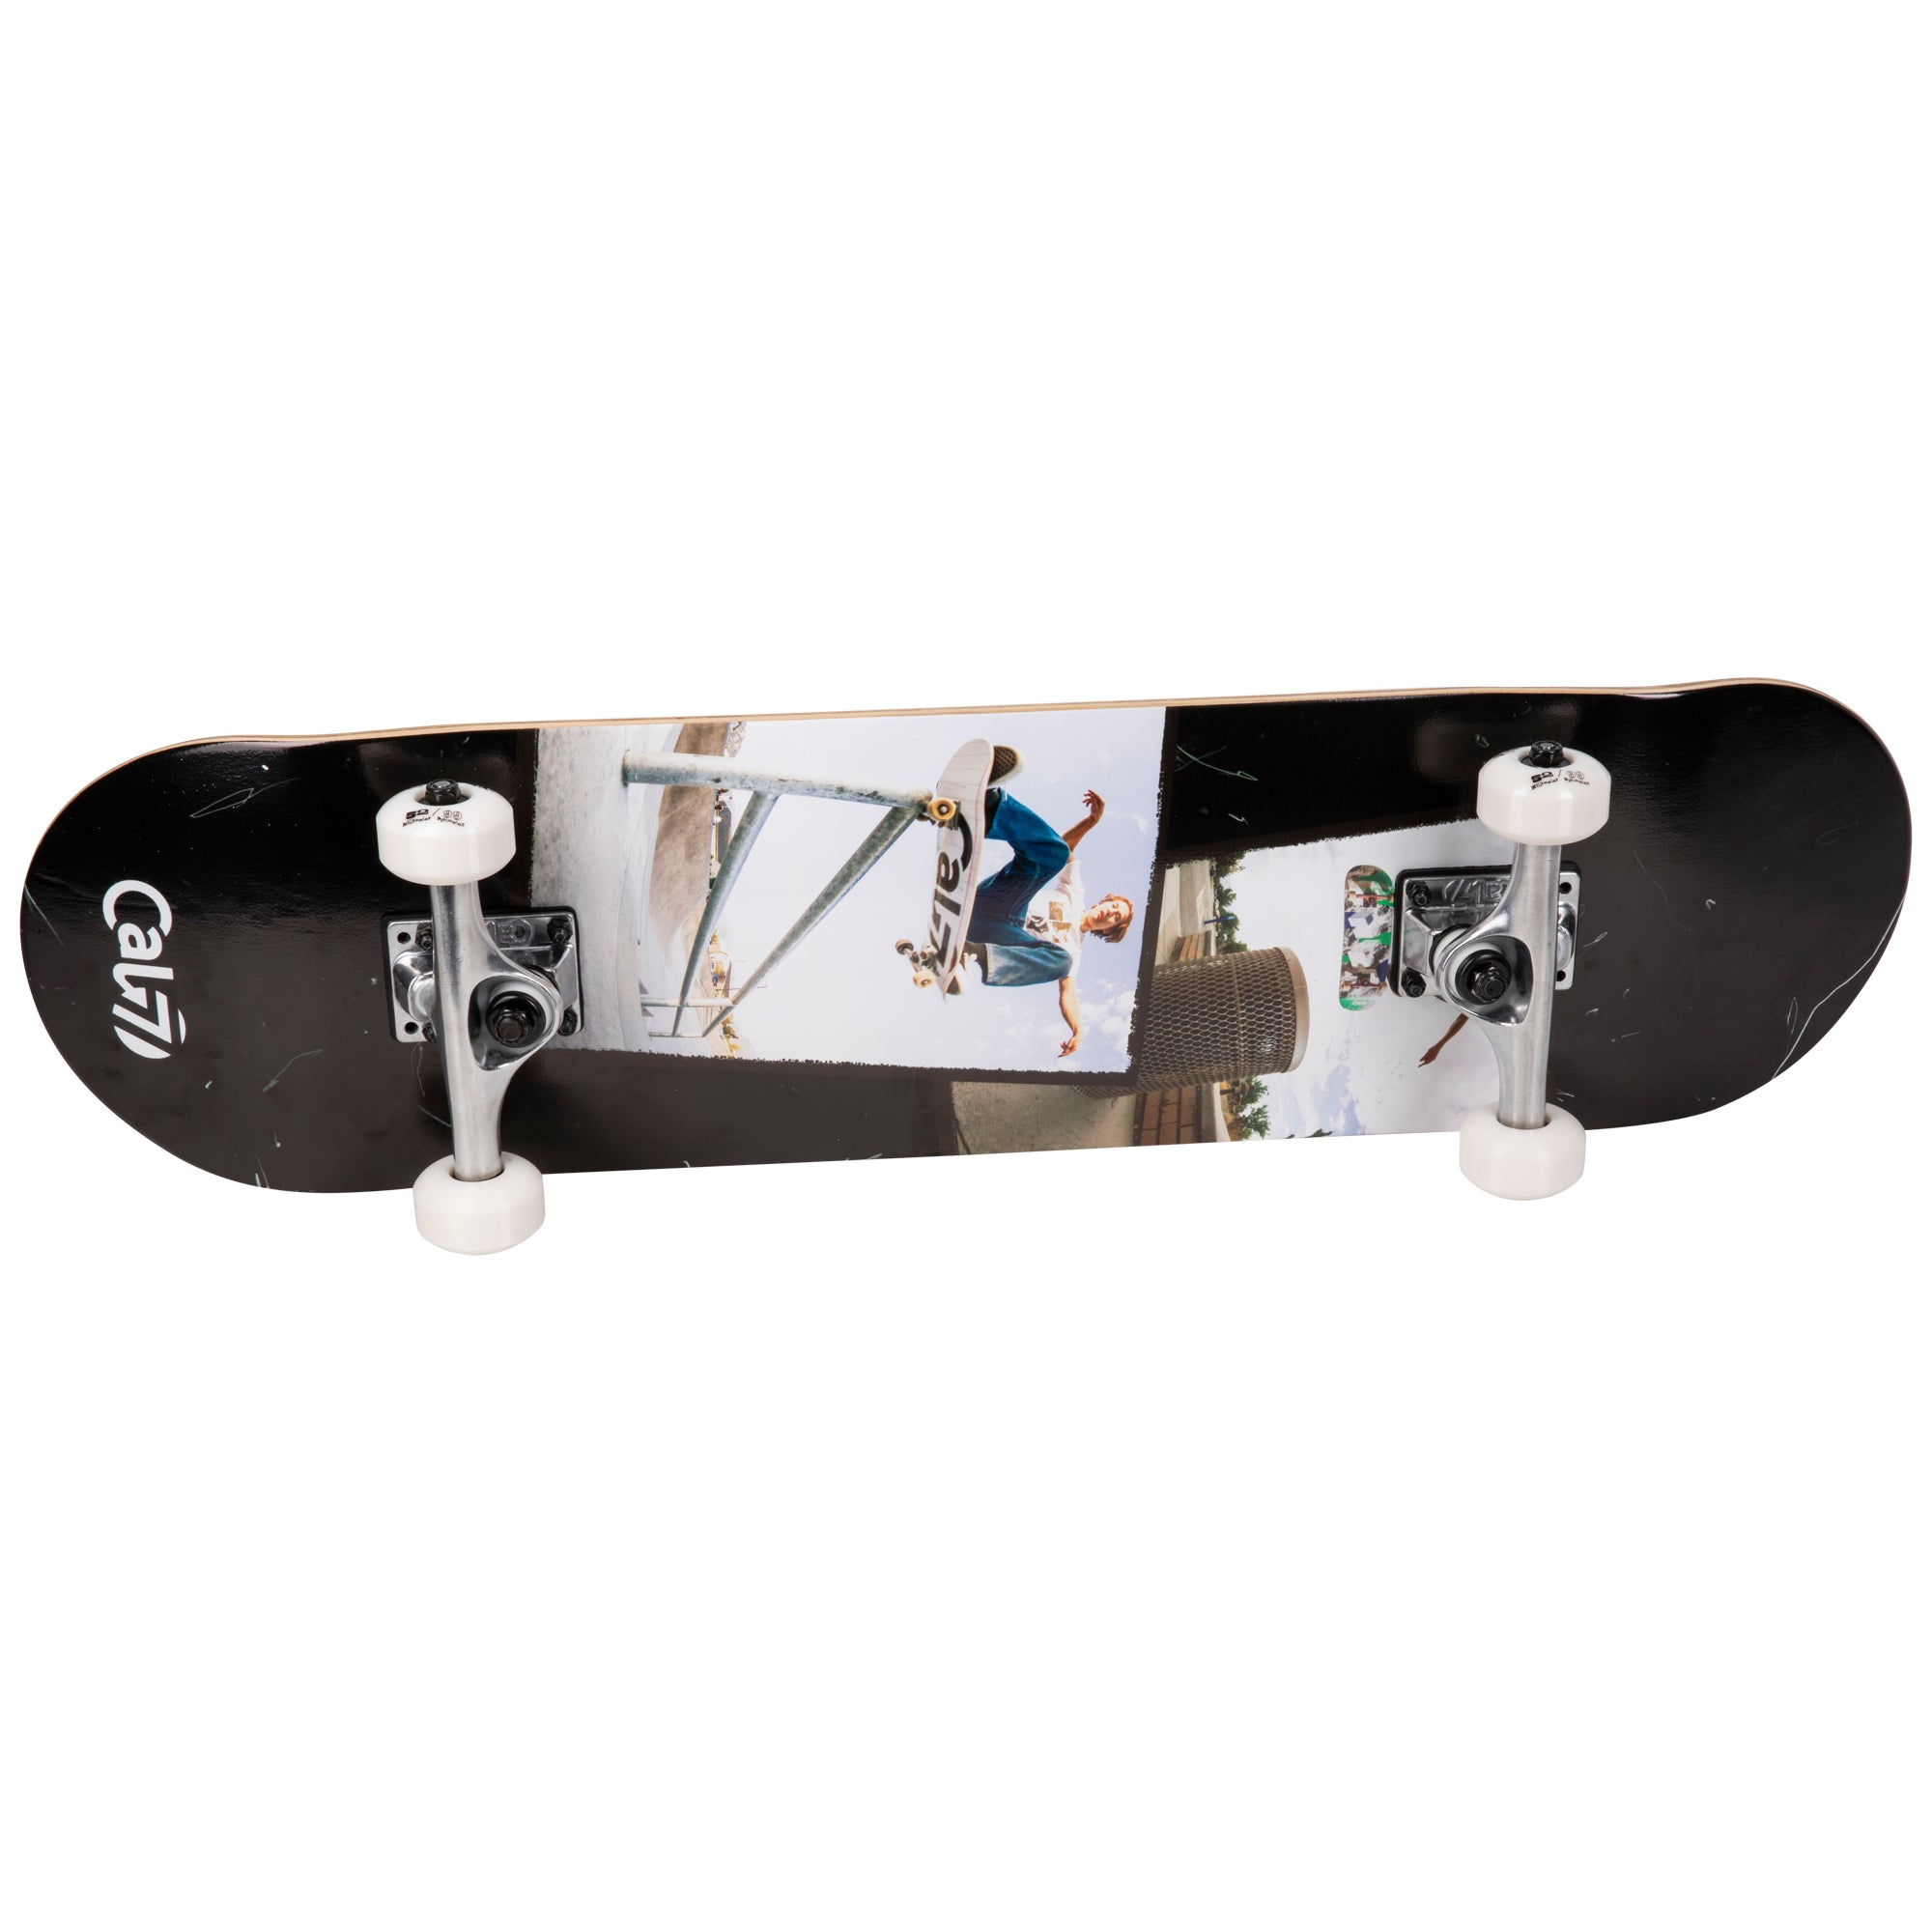 Cal 7 Complete 7.5/7.75/8-Inch Skateboard Perspective with Skateboarding Photograph Design